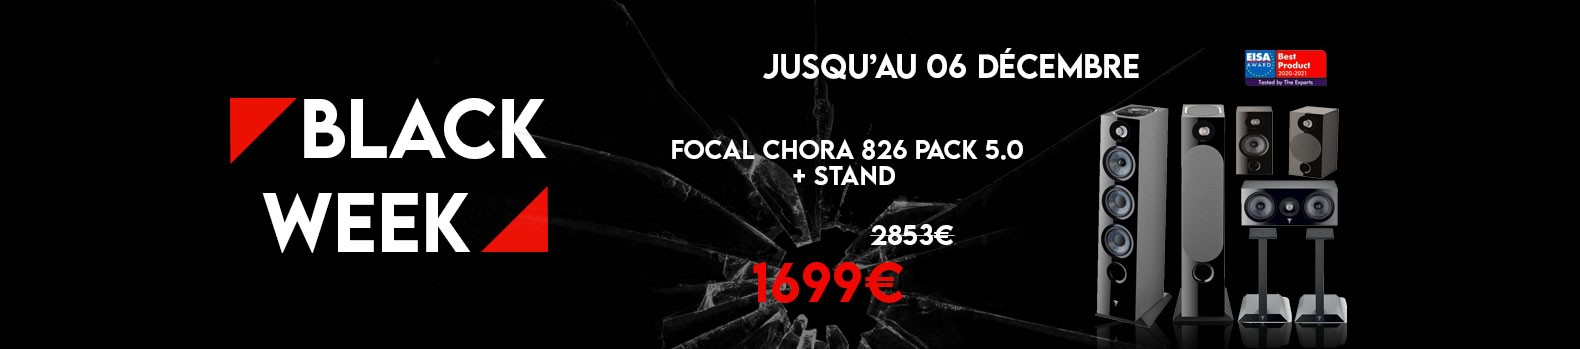 Le pack 5.0 Focal Chora 826 en promotion !